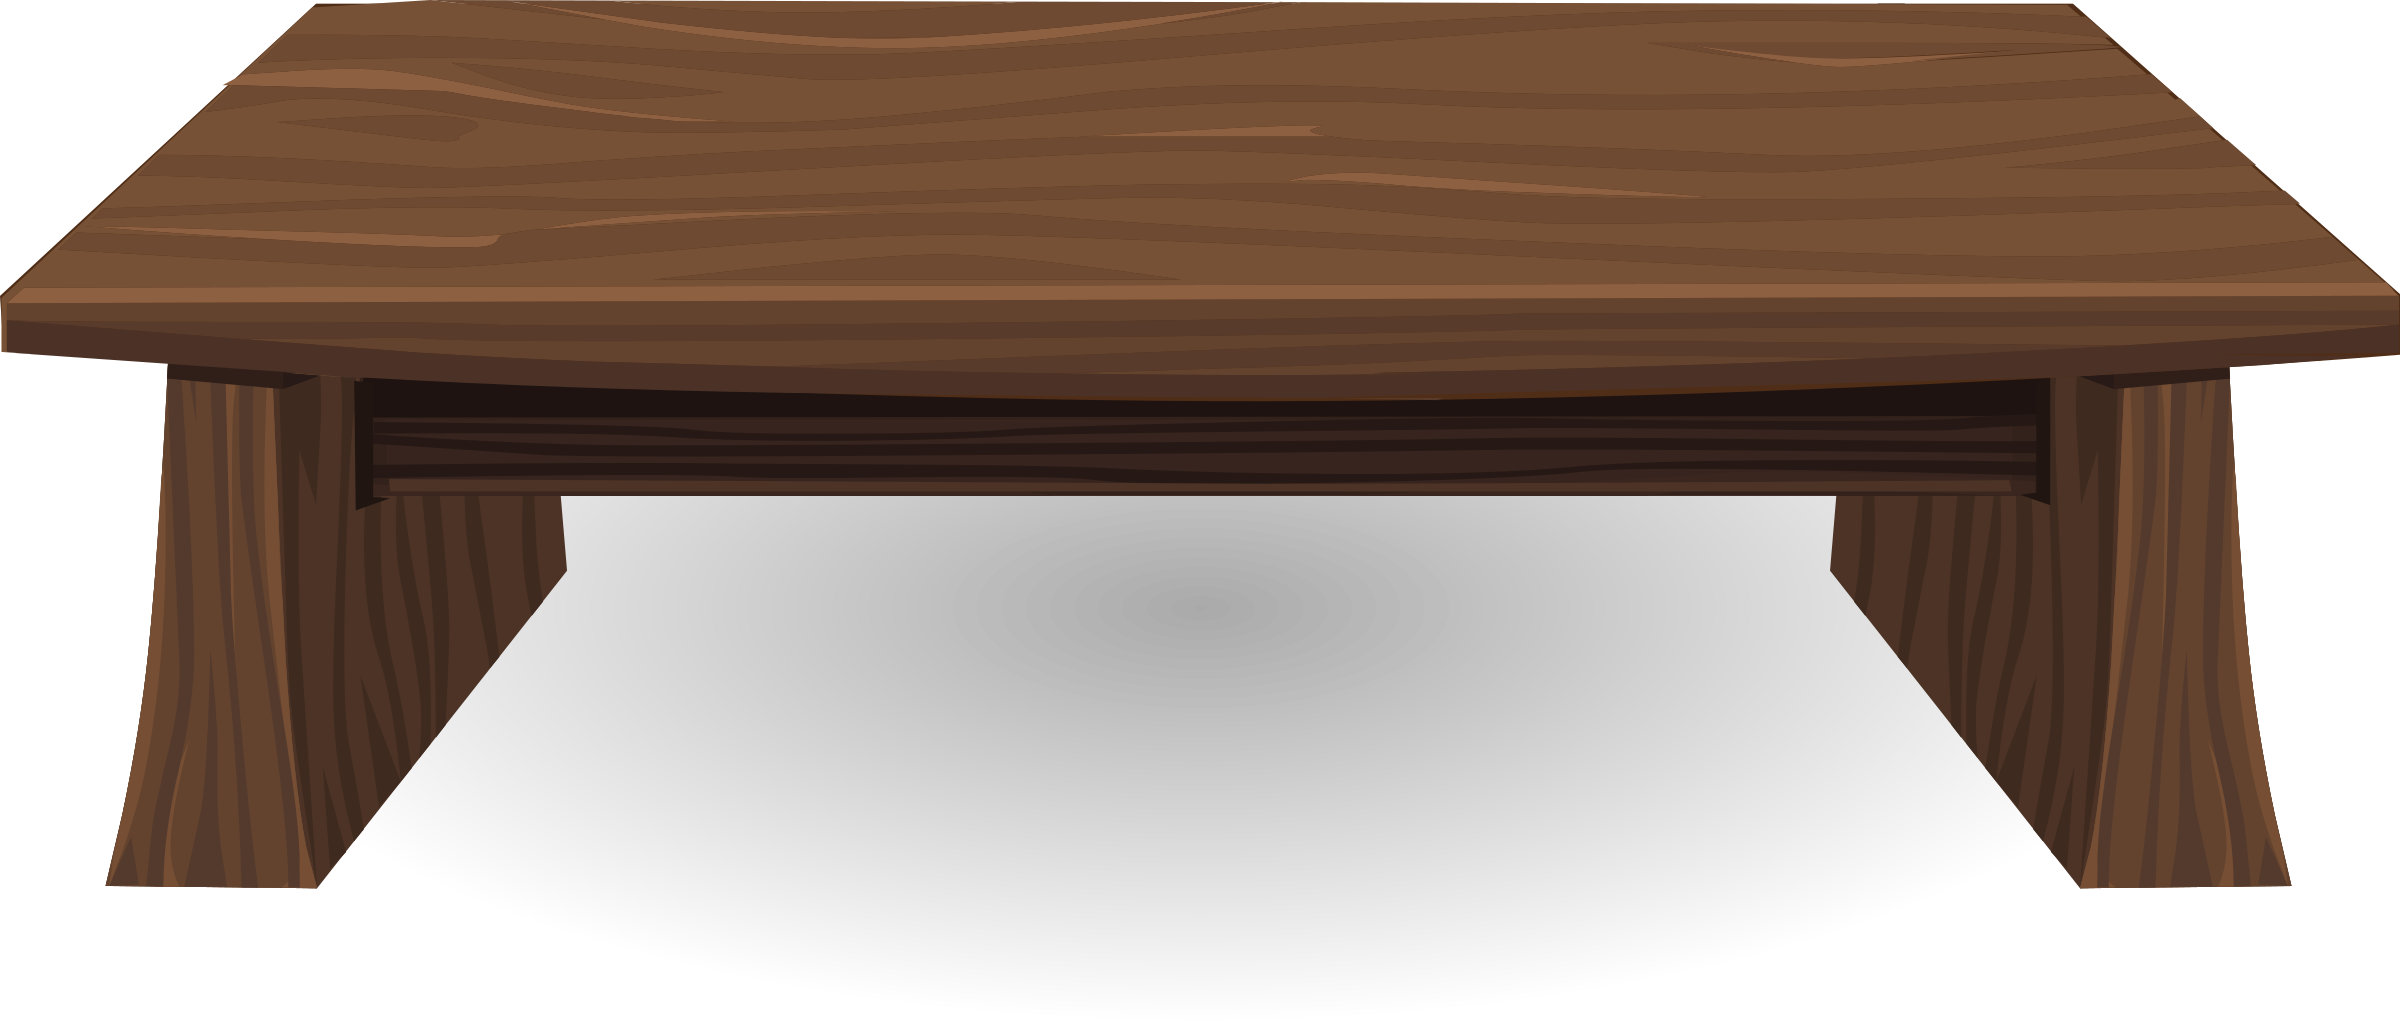 Wood table png. School clip art round